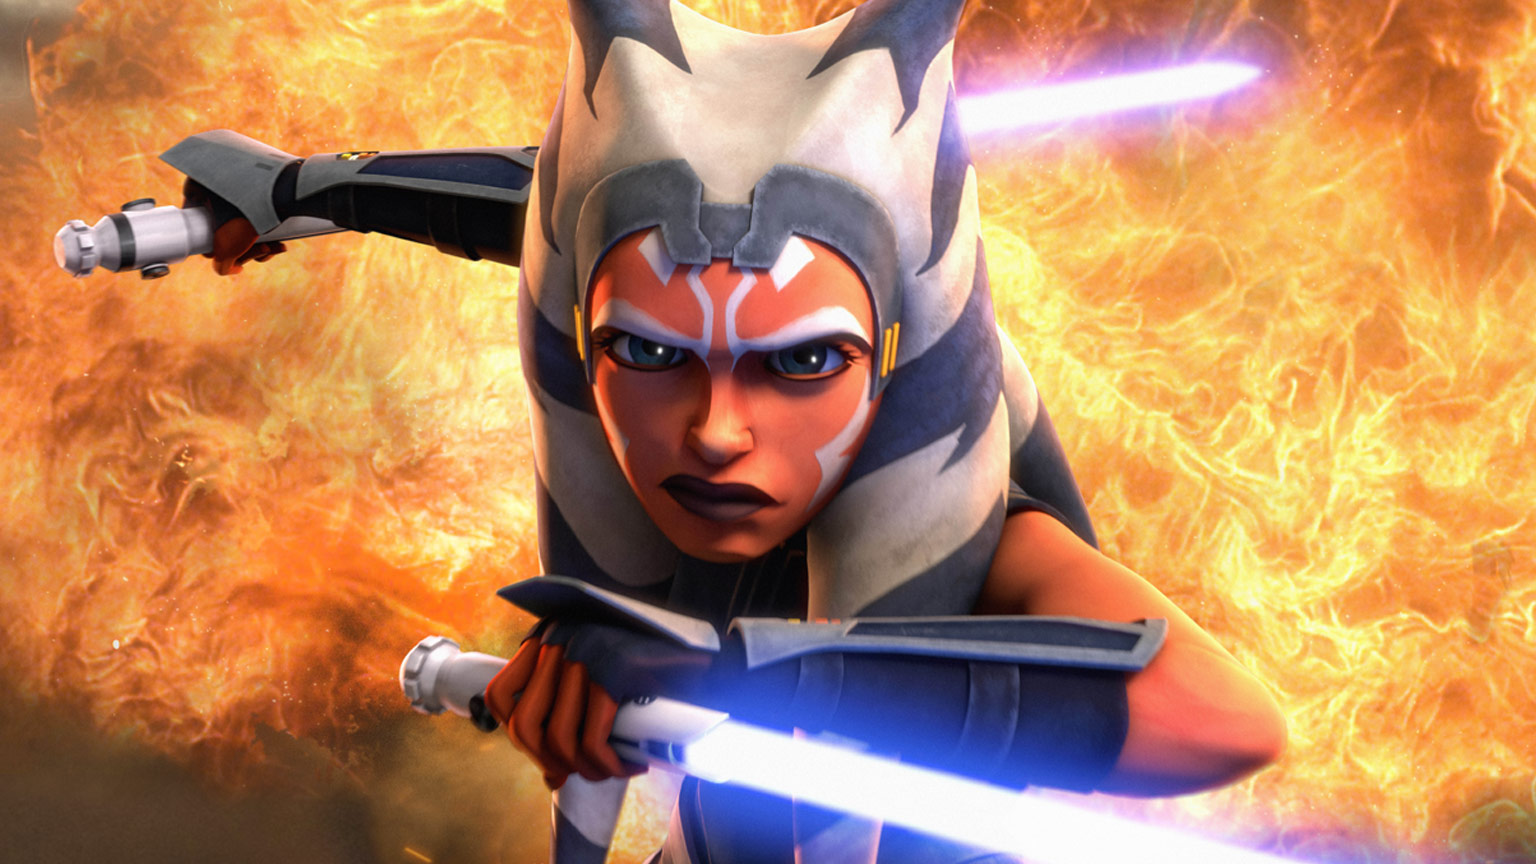 Star Wars: The Clone Wars - Who Is Ahsoka Tano? | StarWars.com